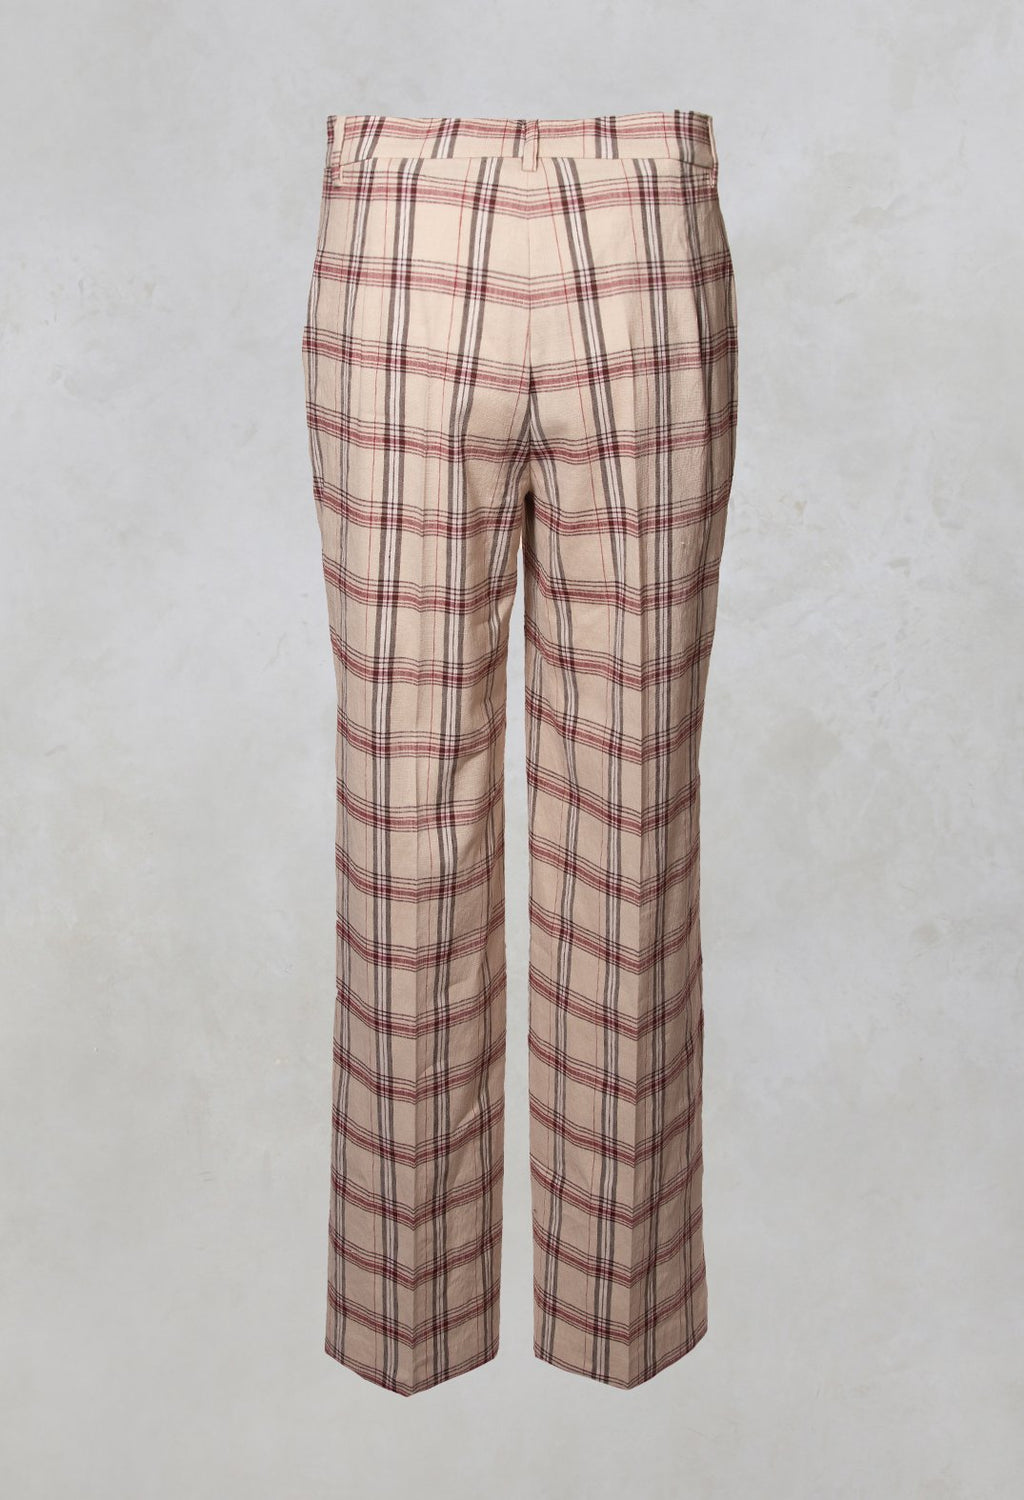 Harmony Trousers in Naturale / Brick / Marrone